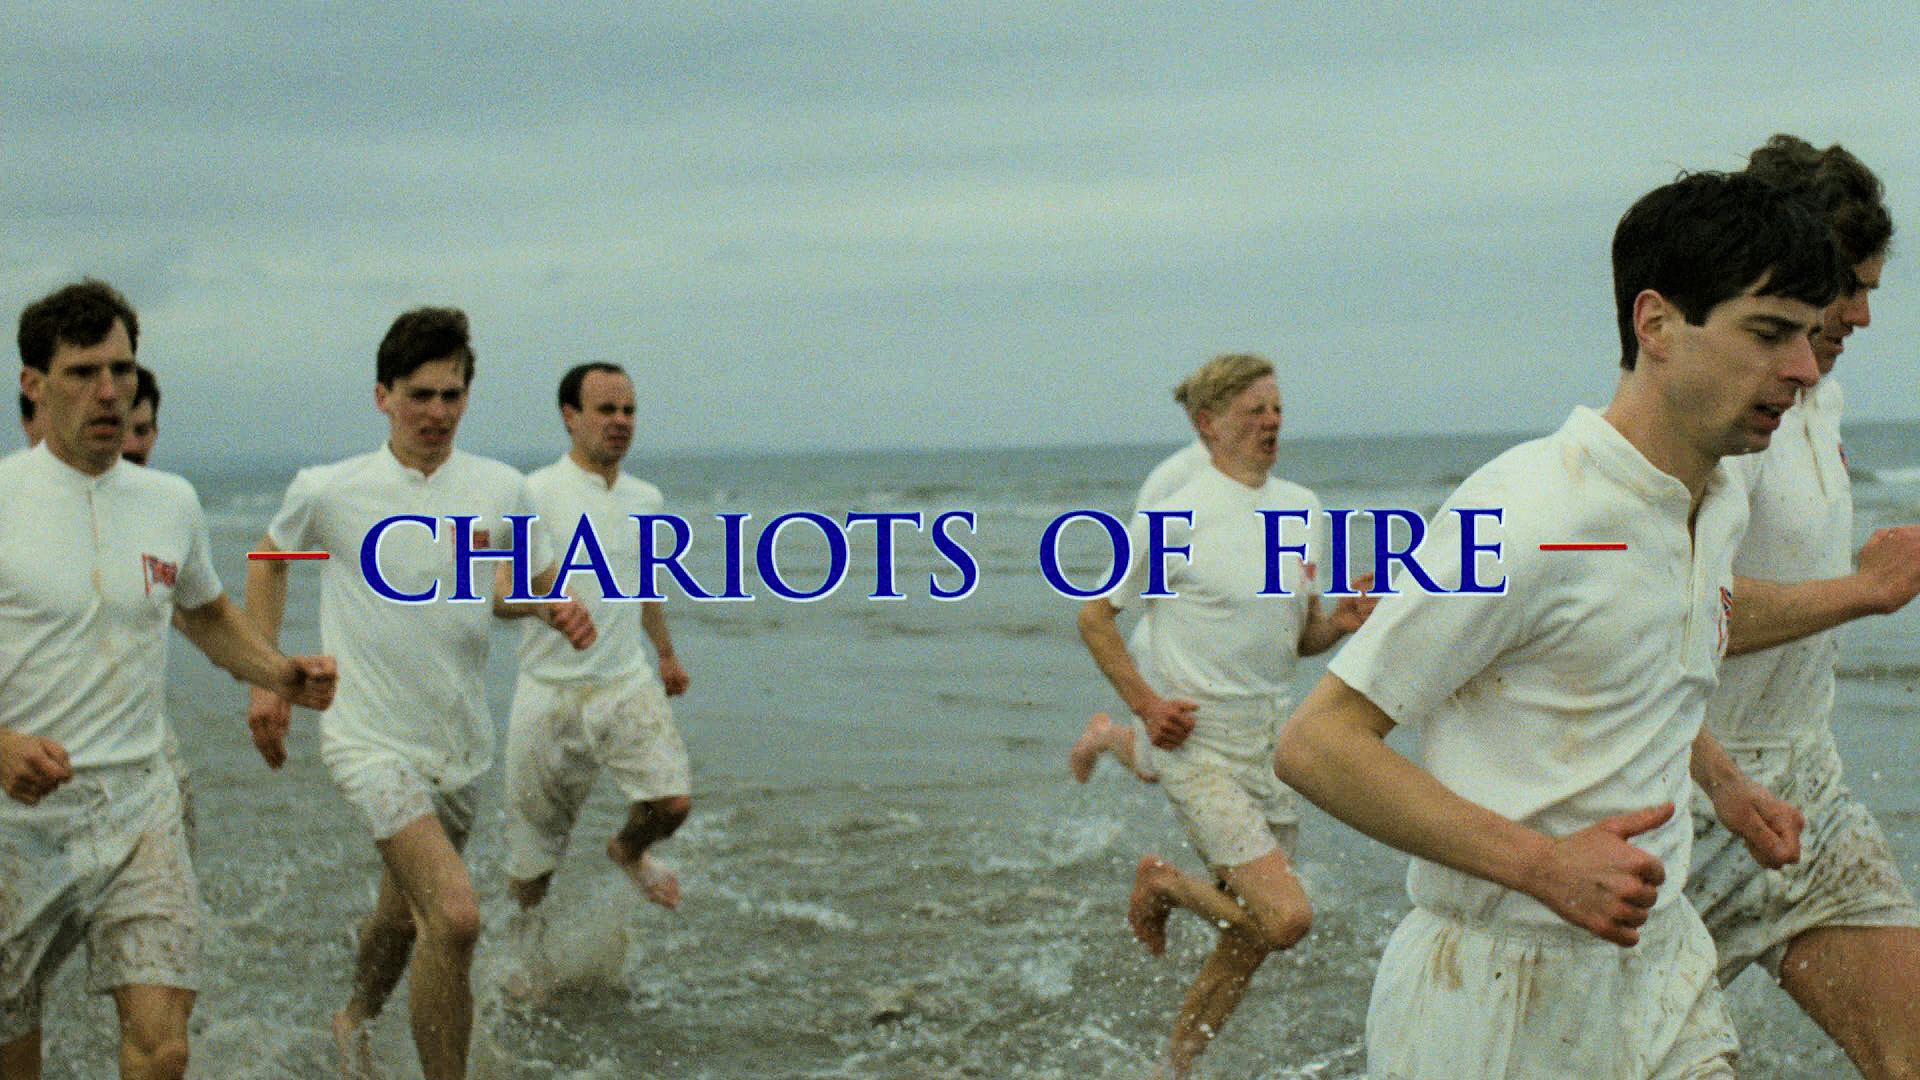 chariots-of-fire-1981-opening-credits.jp